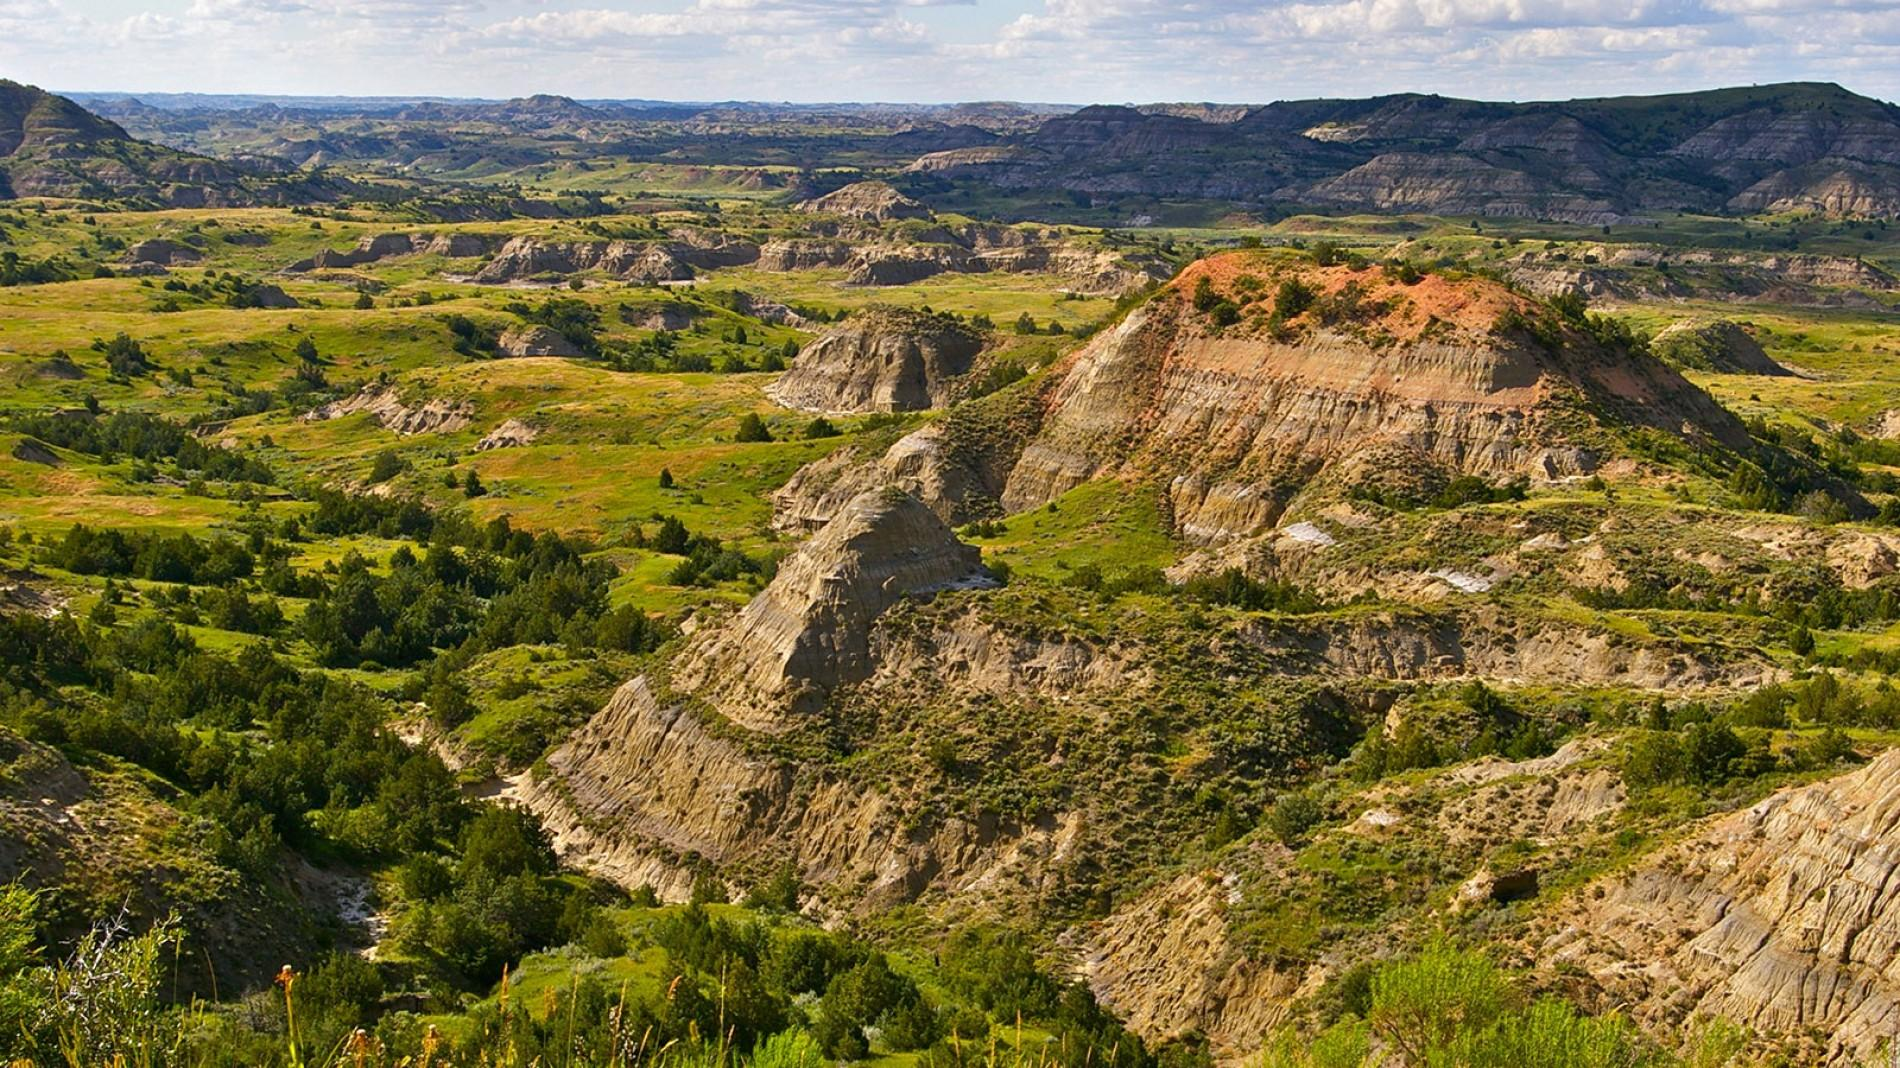 North Dakota Pictures and Facts